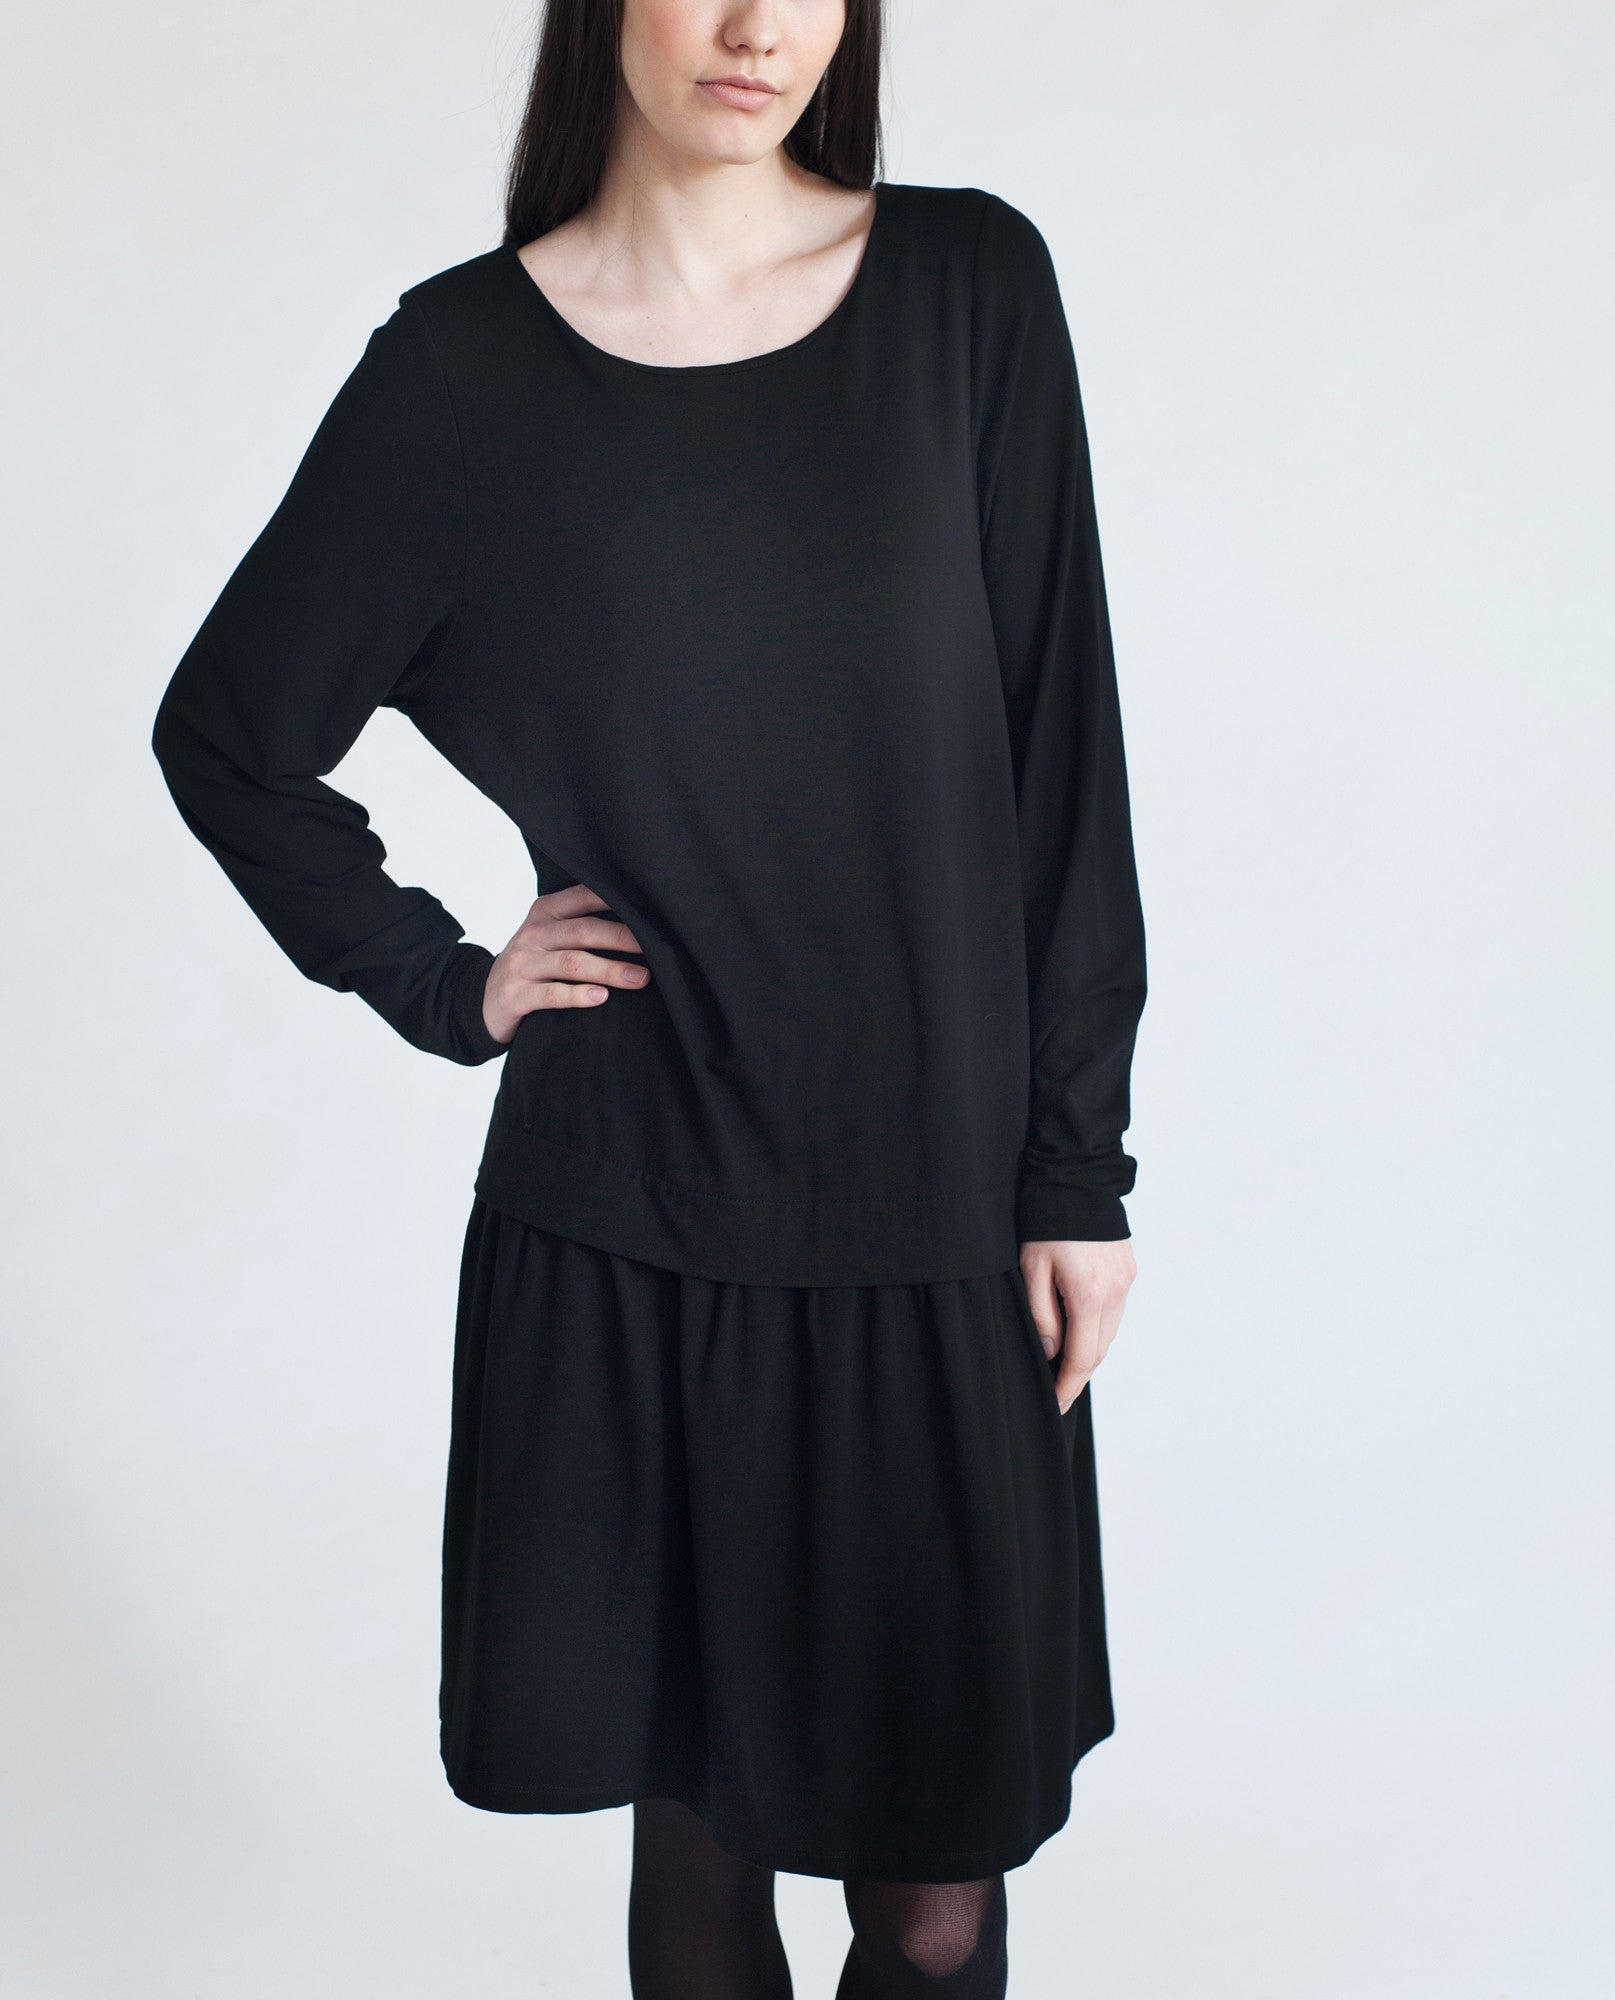 DAWN Dropped Waist Dress In Black from Beaumont Organic